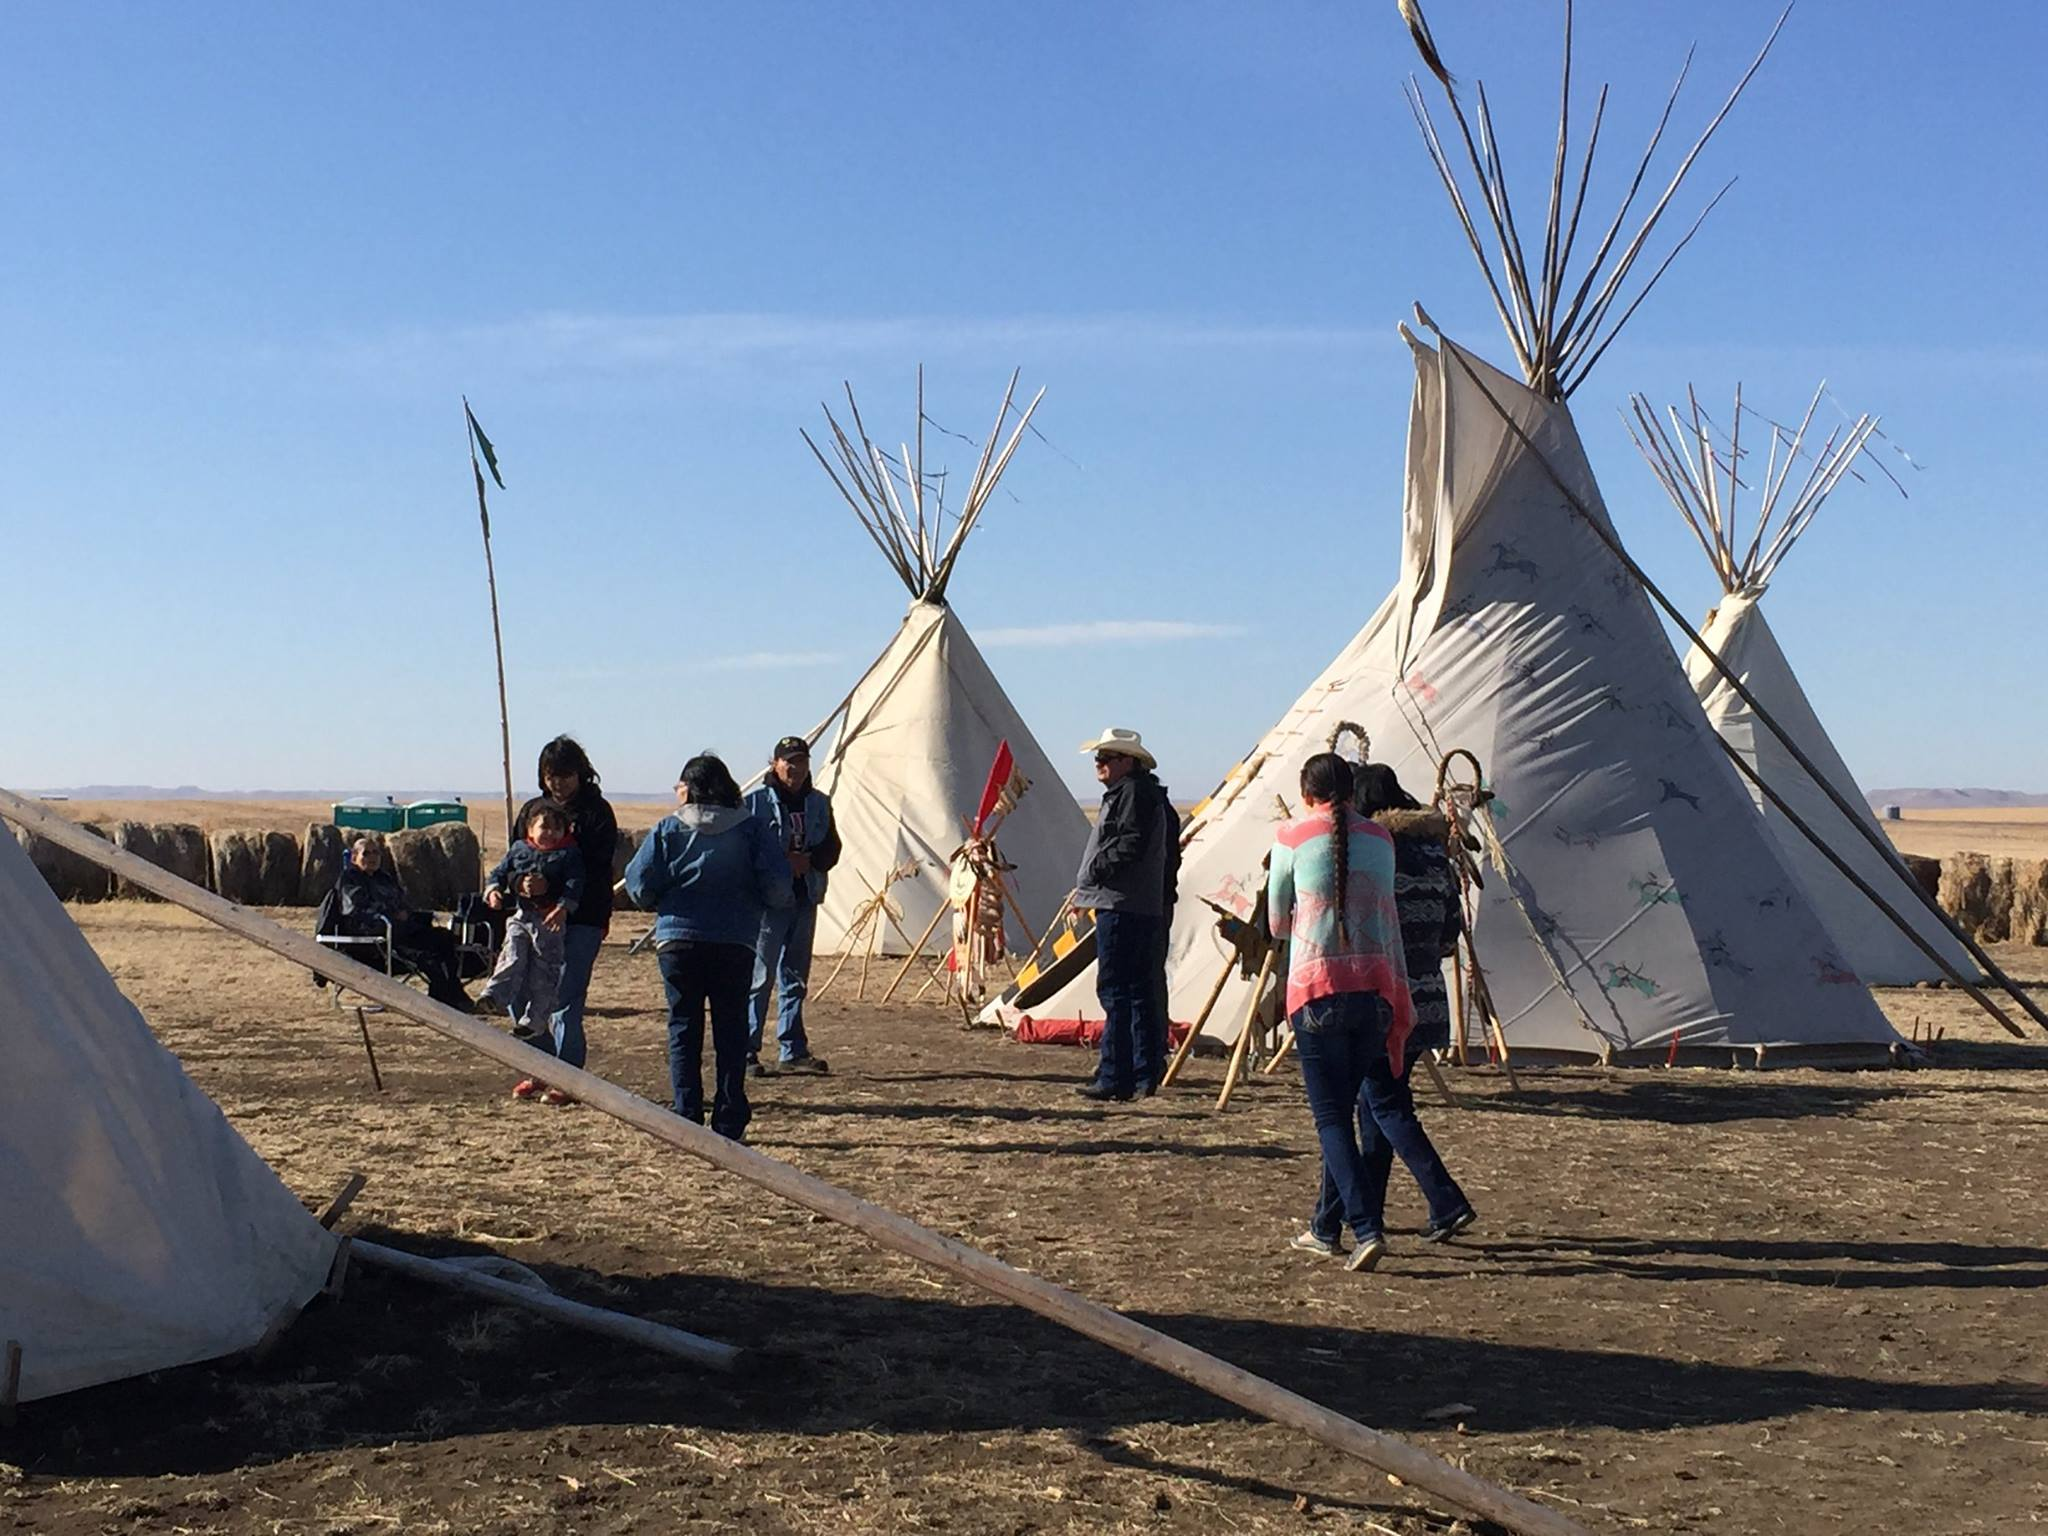 South Dakota tribes form alliance to battle Keystone XL plan